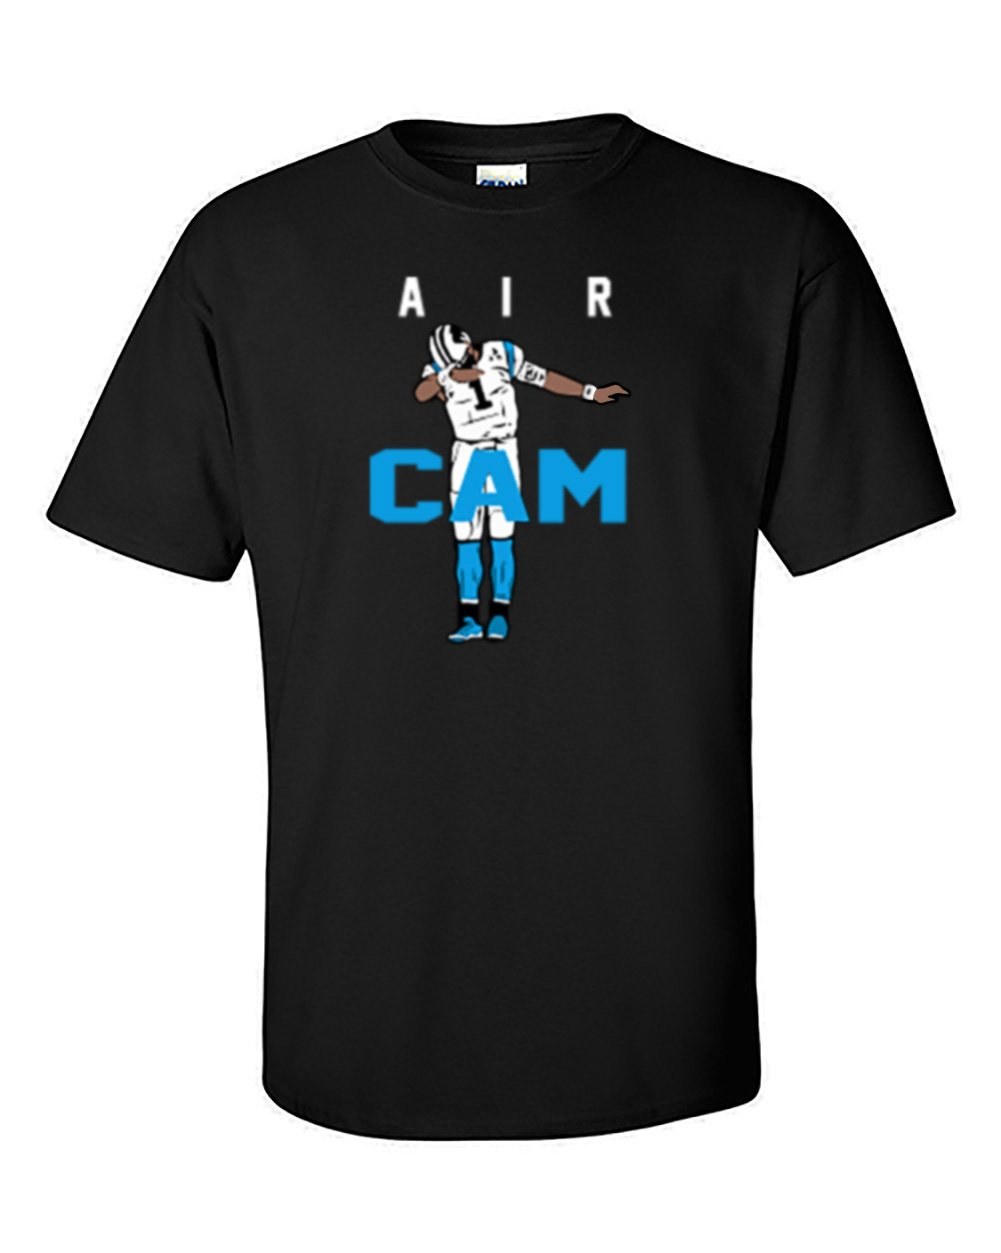 The Silo Black Carolina Cam Dab On Em T-Shirt